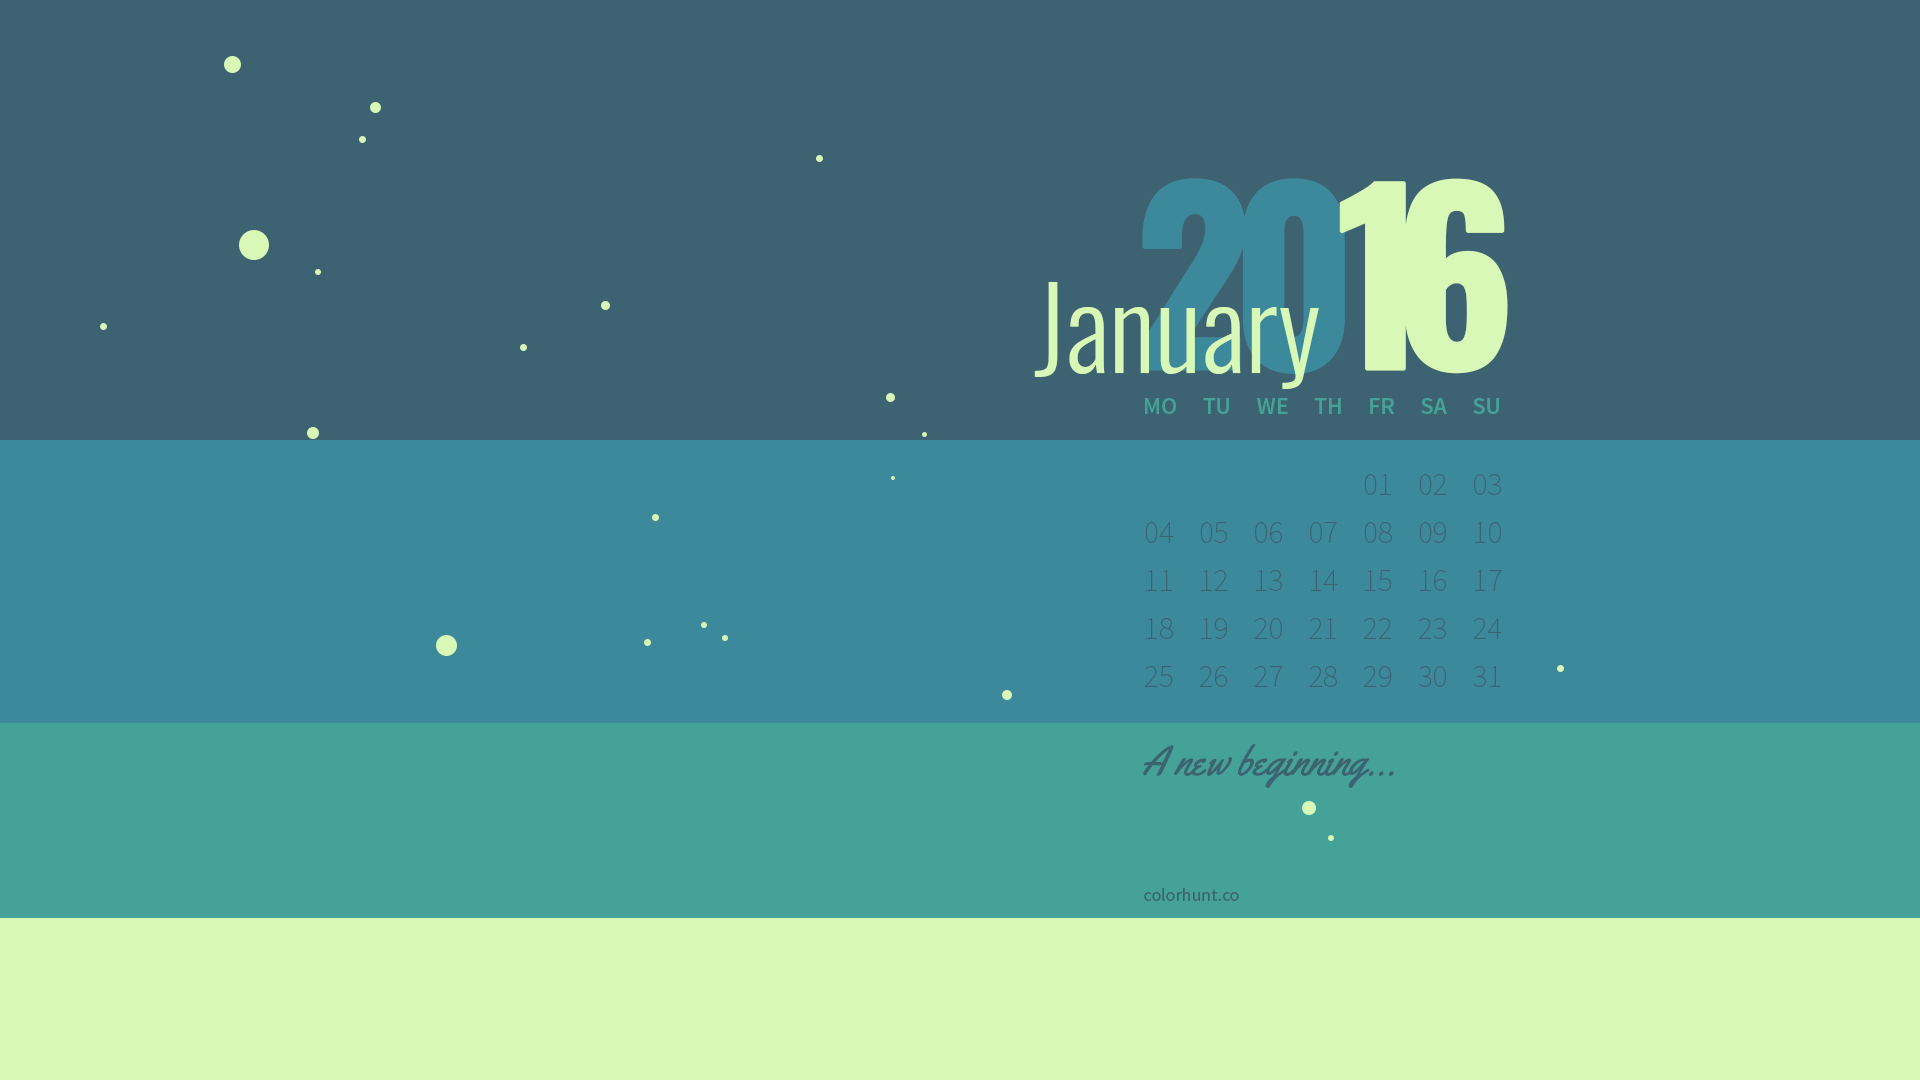 Download V.19 - January, B.SCB Wallpapers